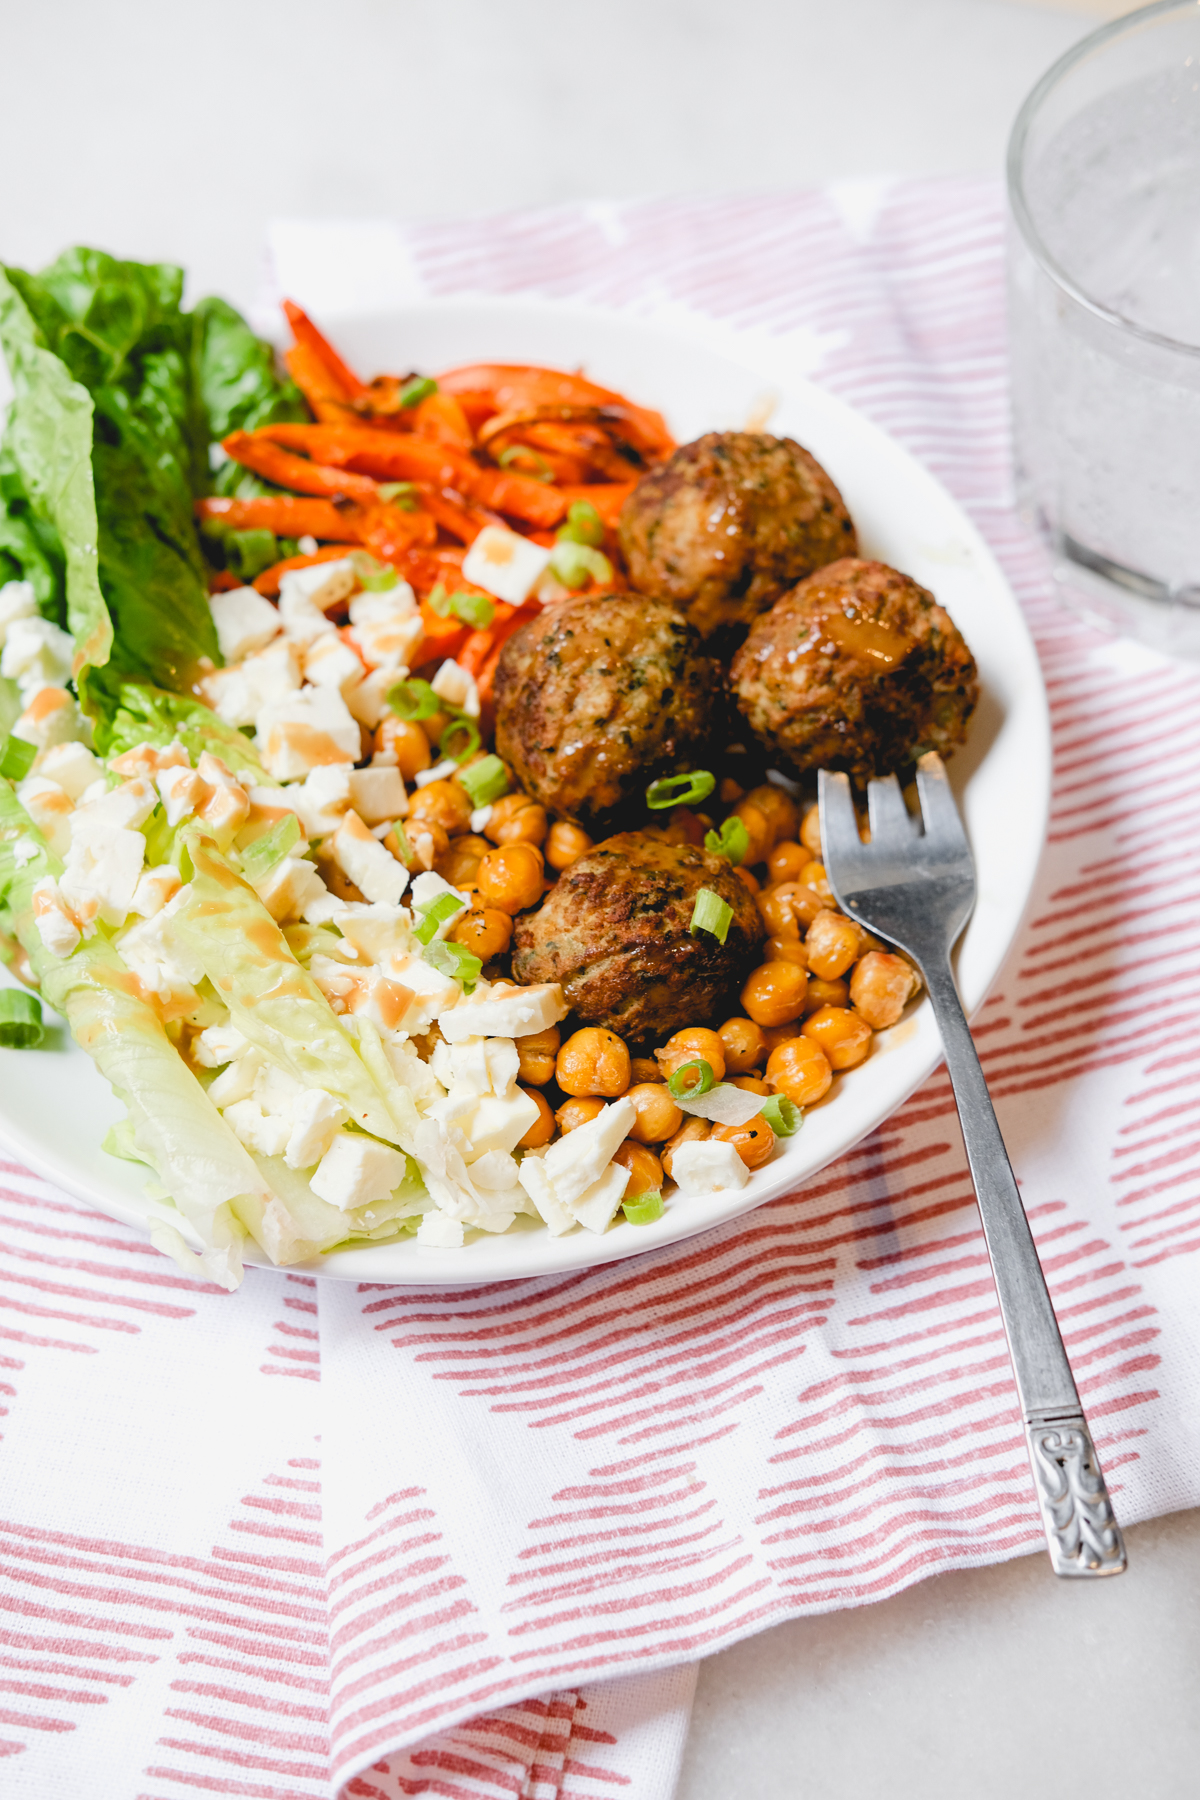 roasted meatballs chickpeas and carrots in a salad with romaine and feta